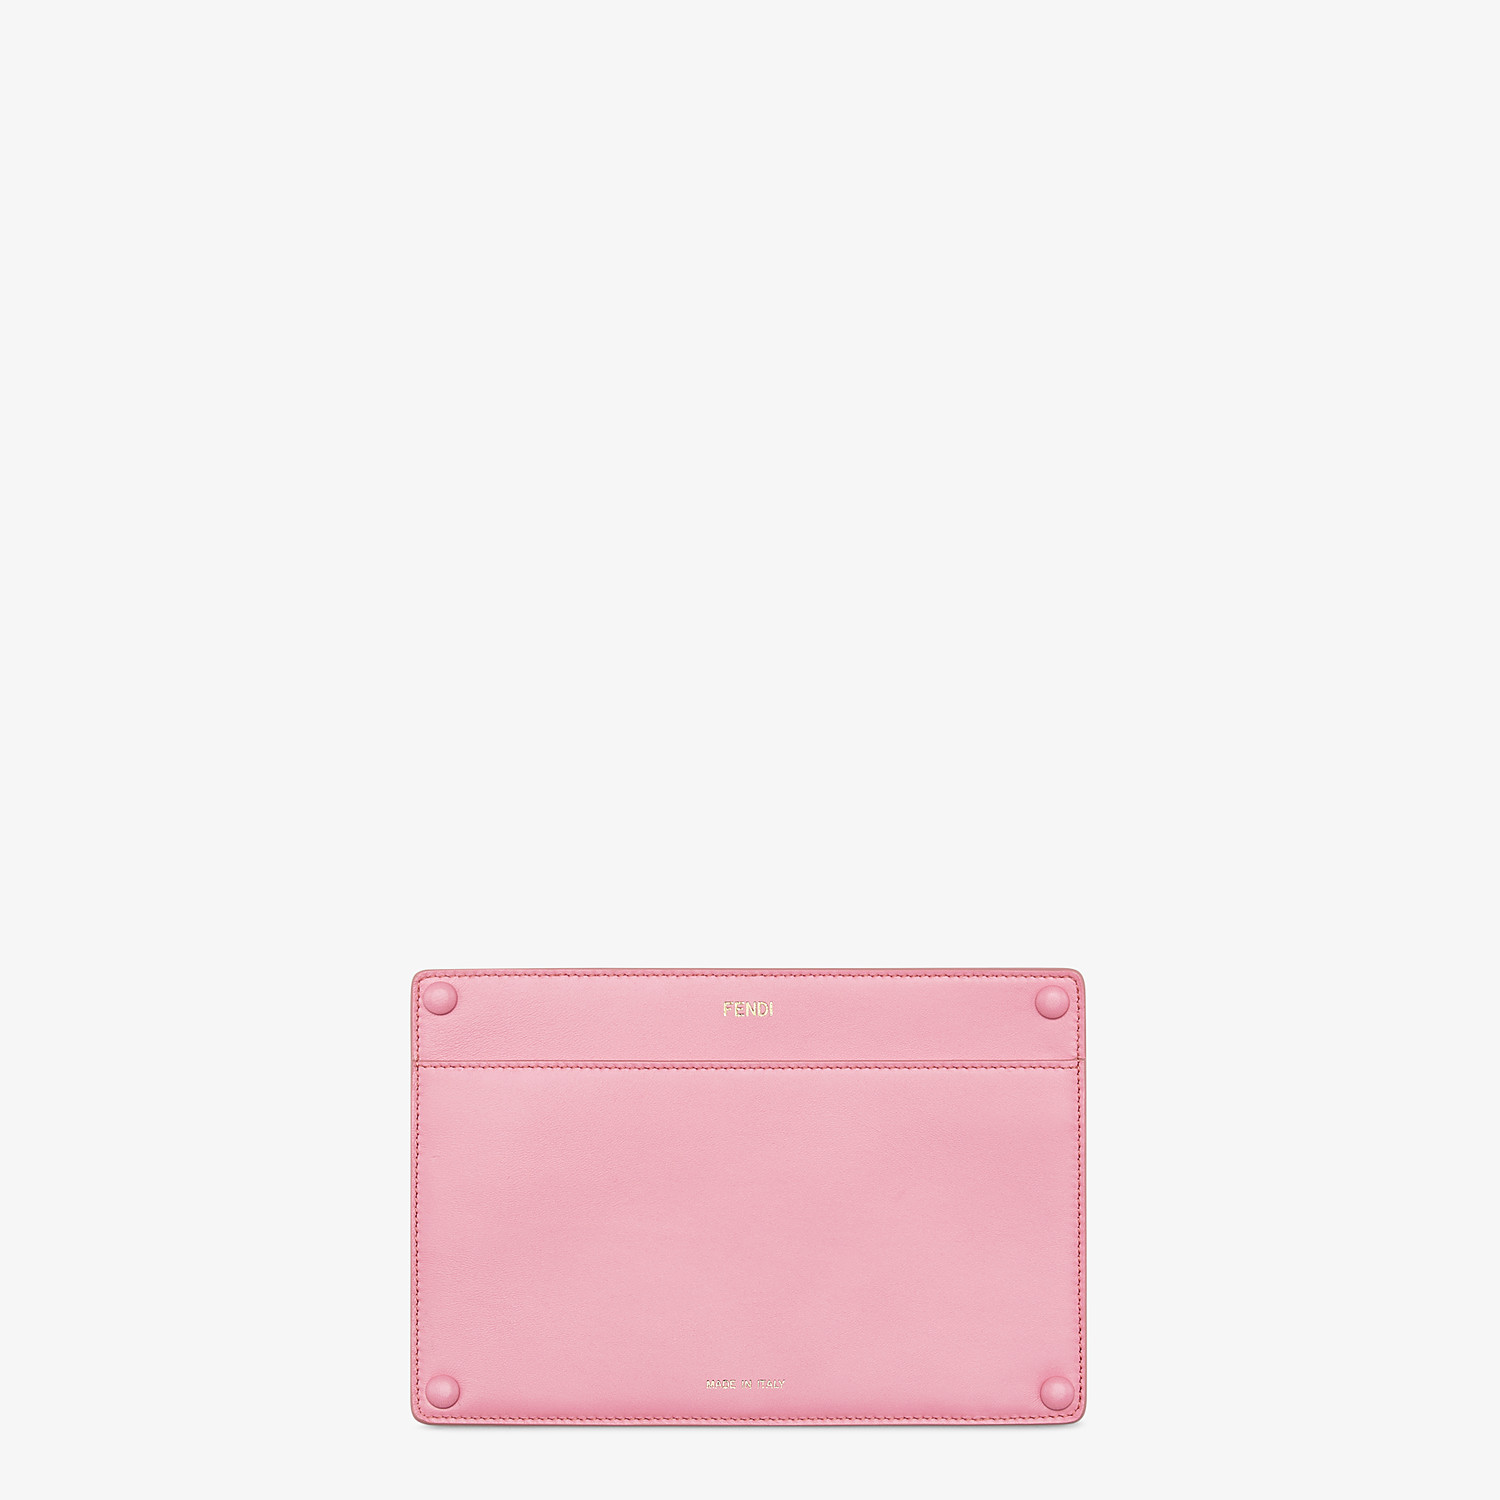 FENDI PEEKABOO ISEEU POCKET - Accessory pocket in pink leather - view 1 detail